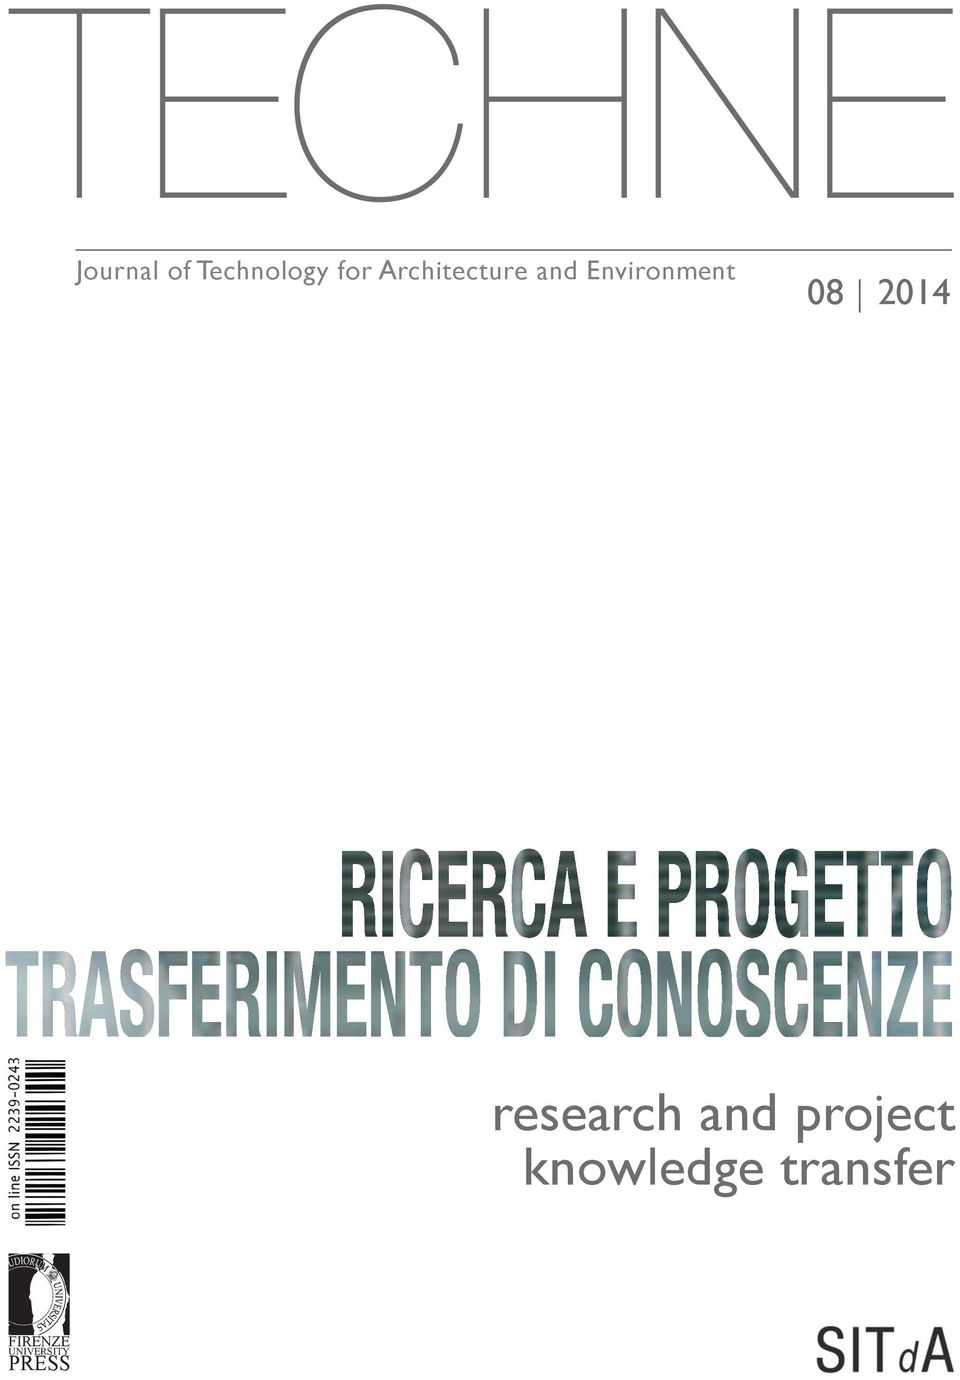 2014 research and project